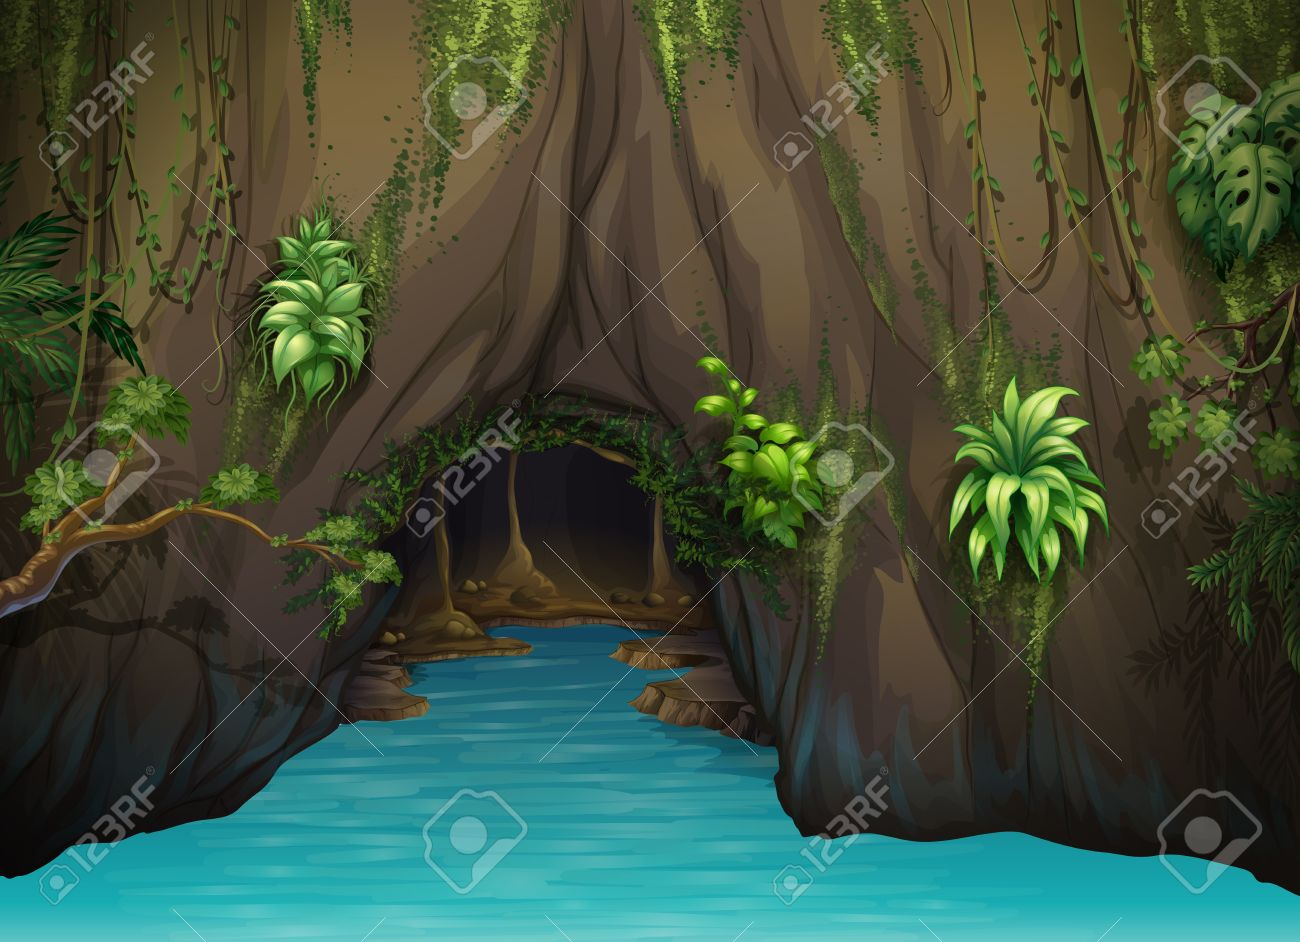 Illustration of a cave and water in a beautiful nature Stock Vector - 17100649